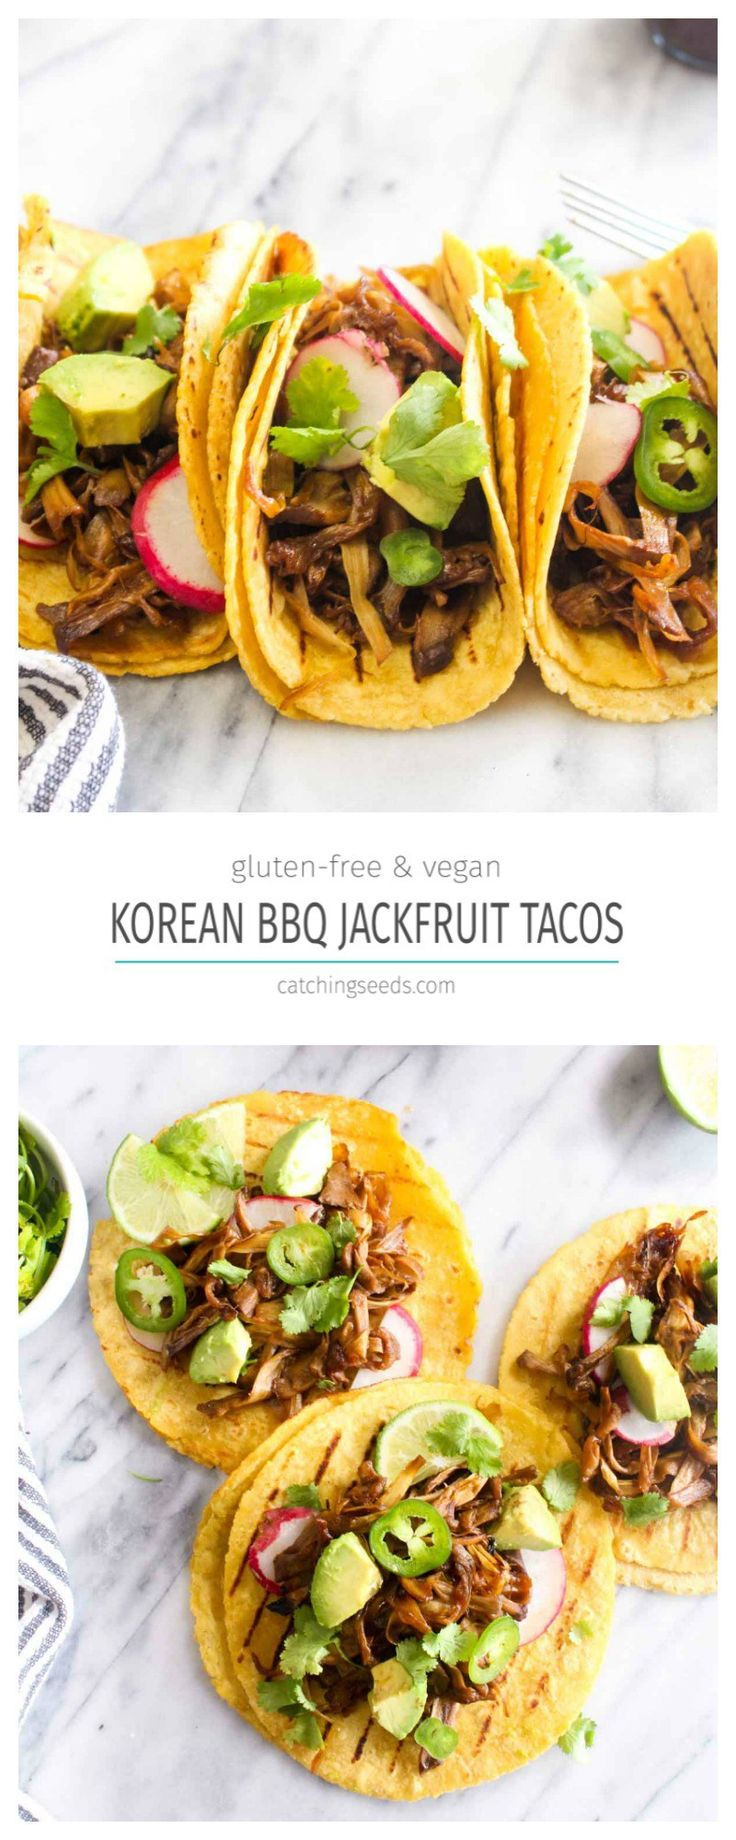 This Korean Barbecue Jackfruit Tacos Recipe is like eating vegan pulled pork! The jackfruit is coated in a sweet and salty Korean barbecue sauce for maximum flavor. | CatchingSeeds.com